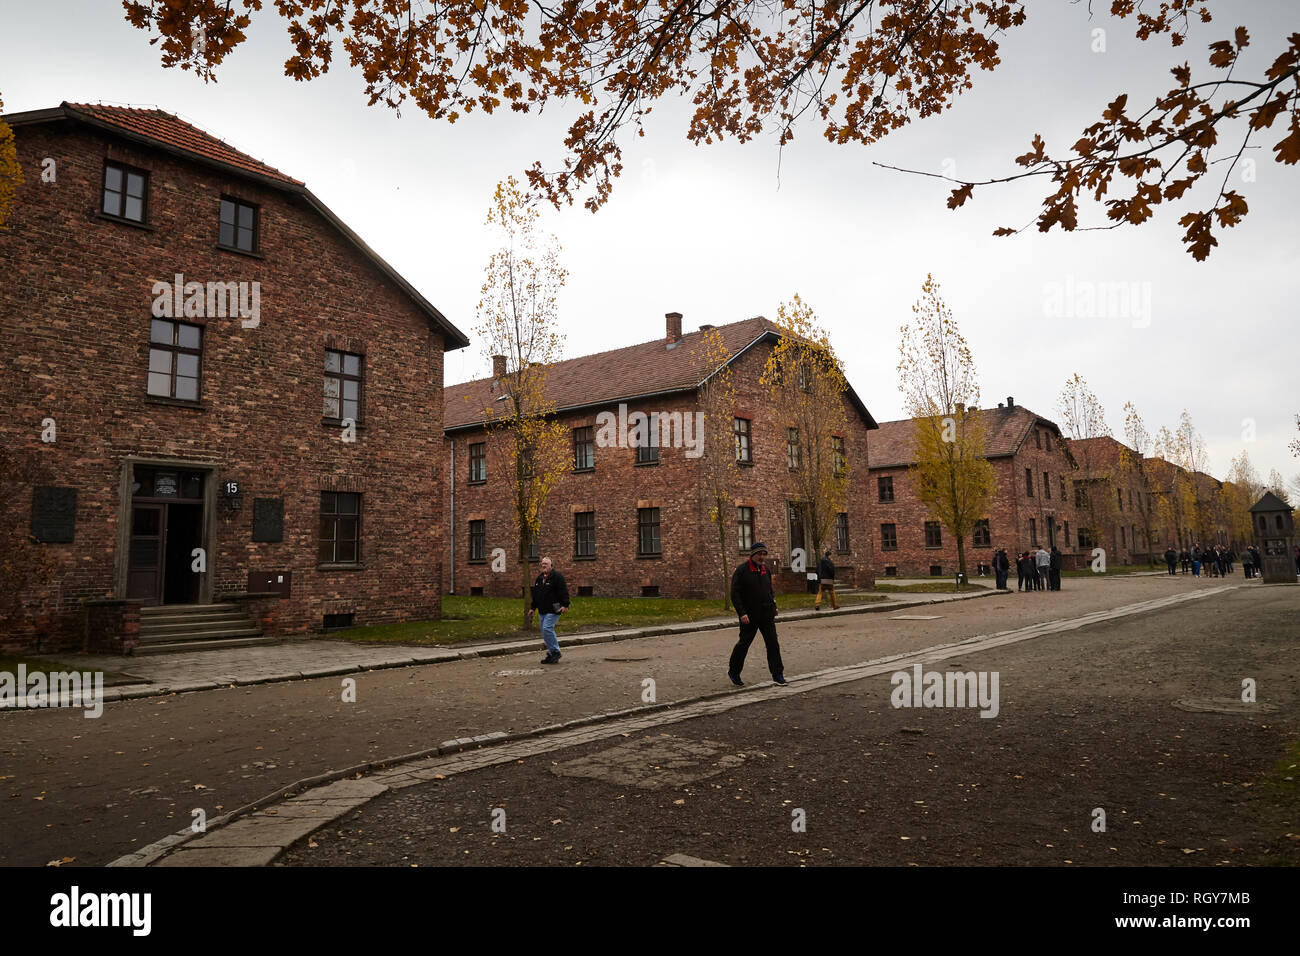 Auschwitz. Poland-11-December, 2015: Inside the hell of Auschwitz and Birkenau concentrations camp. - Stock Image